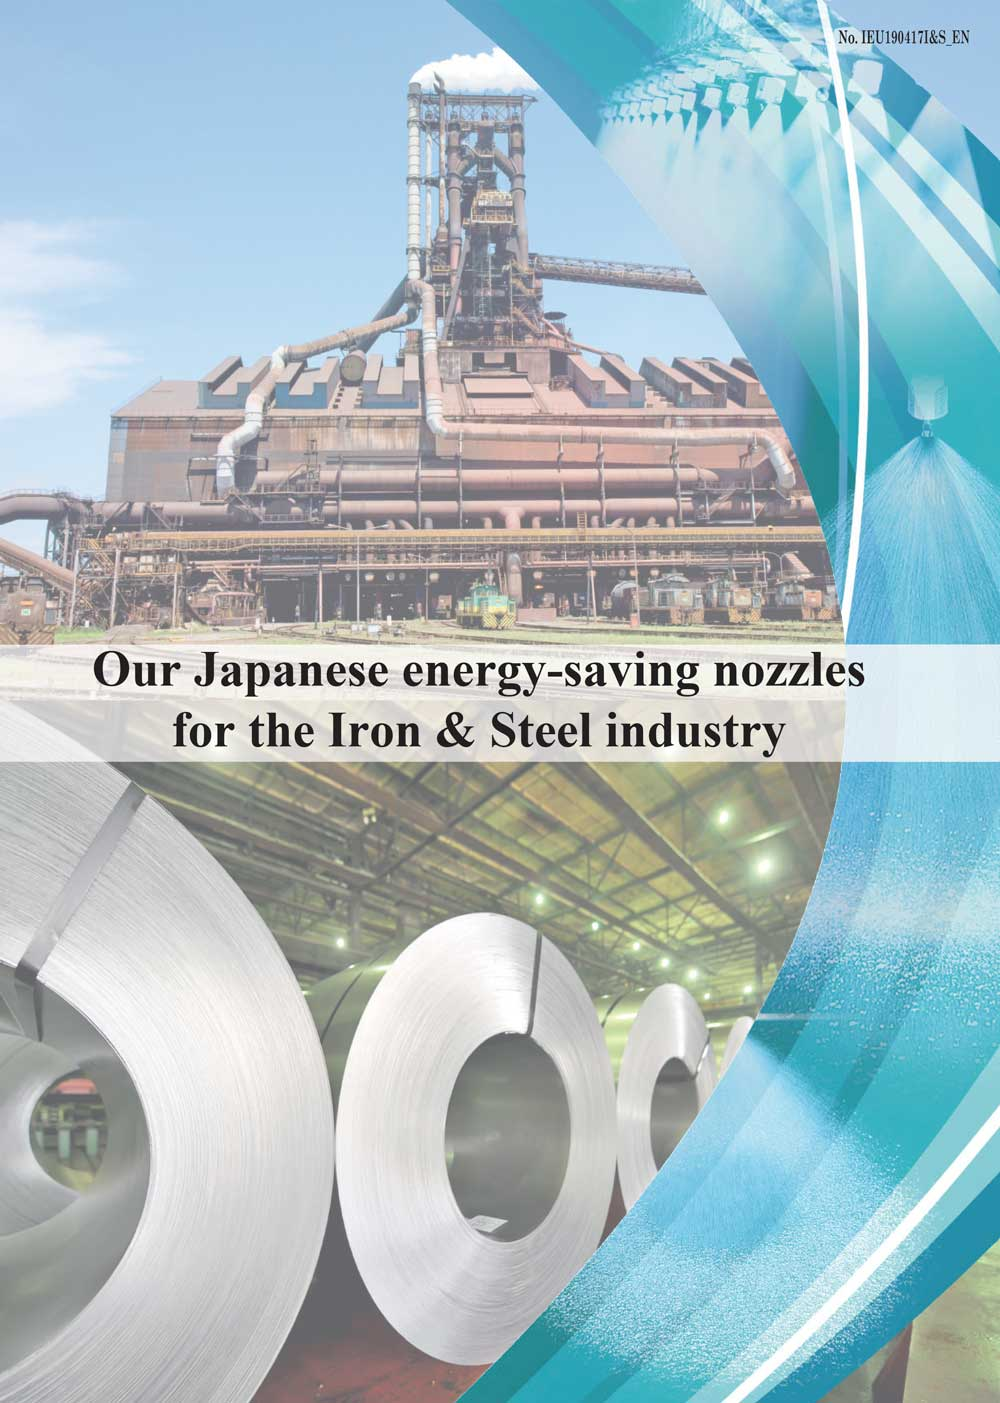 Iron-and-Steel-making-focused-solutions